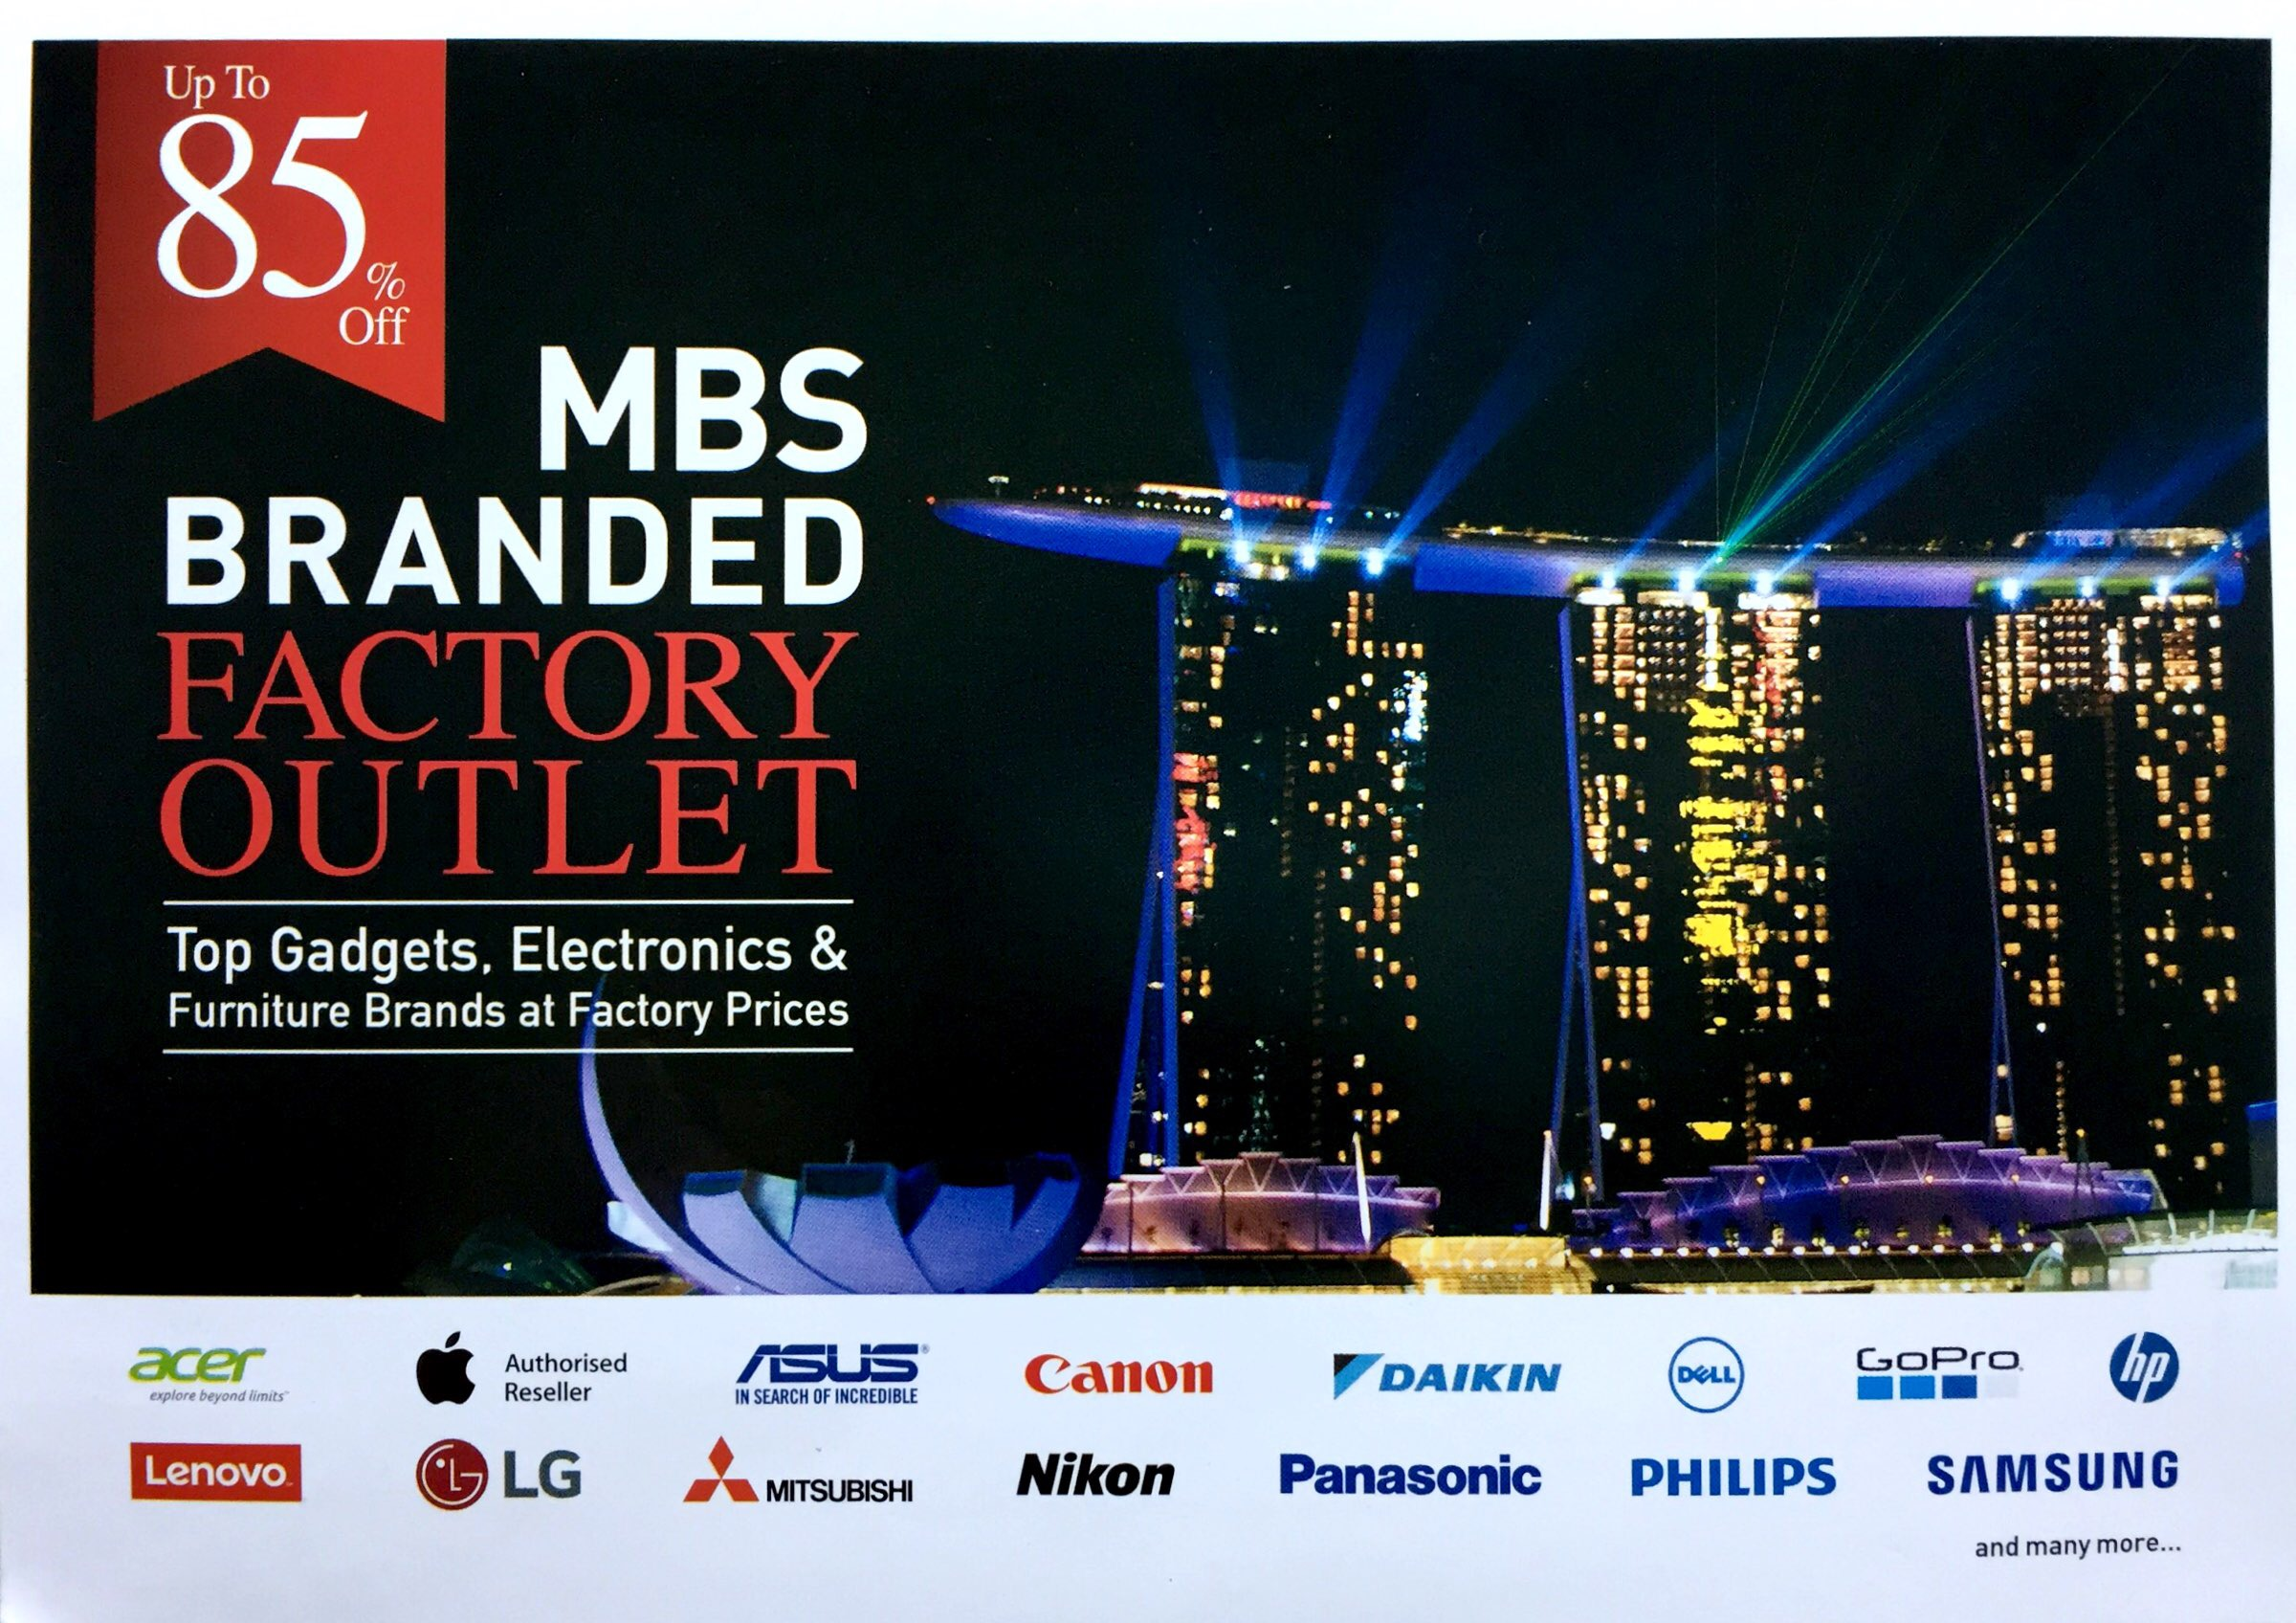 MBS Branded Factory Outlet   20 to 22 October 2017   11am to 9pm   Marina Bay Sands Convention Centre Level 1 Hall A and B  pg1